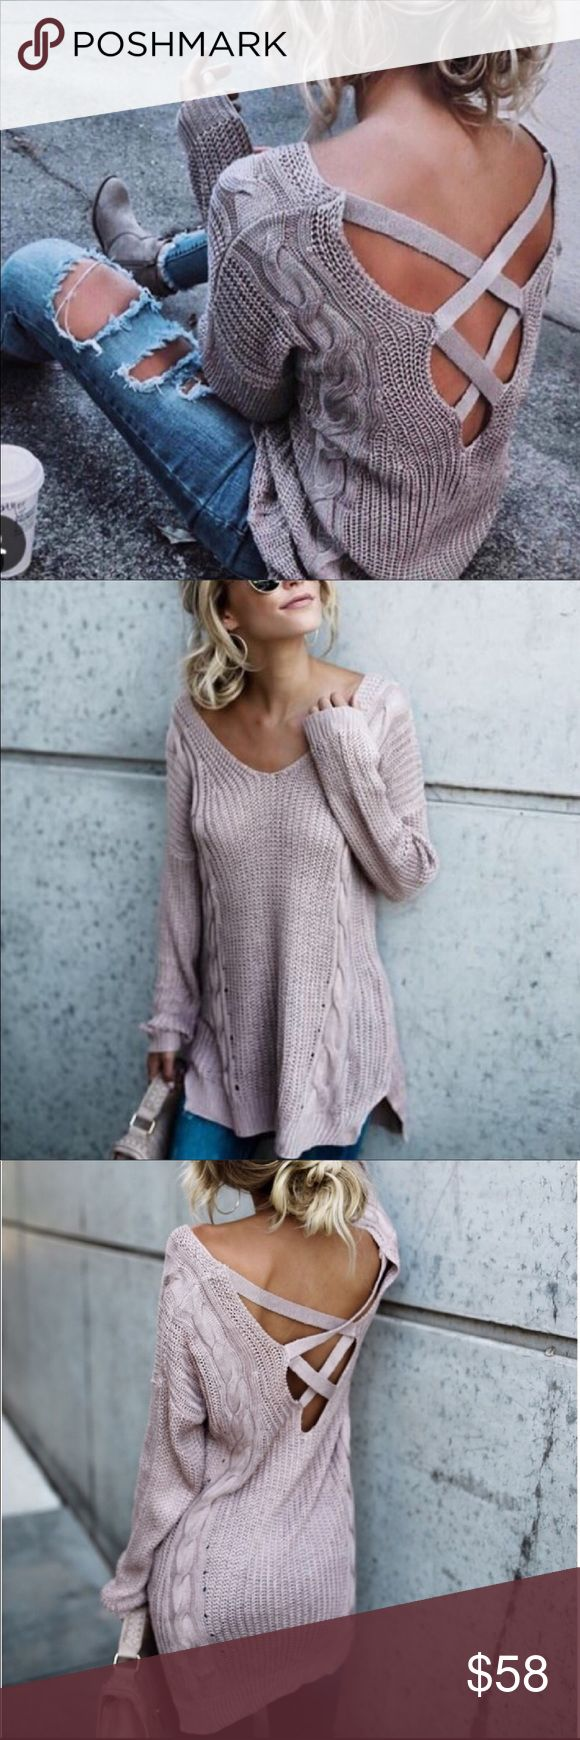 ✨New Arrival✨Loose Knit Criss Cross Mauve Sweater 🖤Gorgeous Criss Cross Mauve Sweater , loose knit, light weight made of breathable material so it's very comfy! Super trendy this season! Cotton/Polyester Blend   ▪️Only have one medium in stock!   ✔️Price is firm unless bundled   🛍Bundle 2 + items to receive a 10% discount🛍 Boutique Sweaters